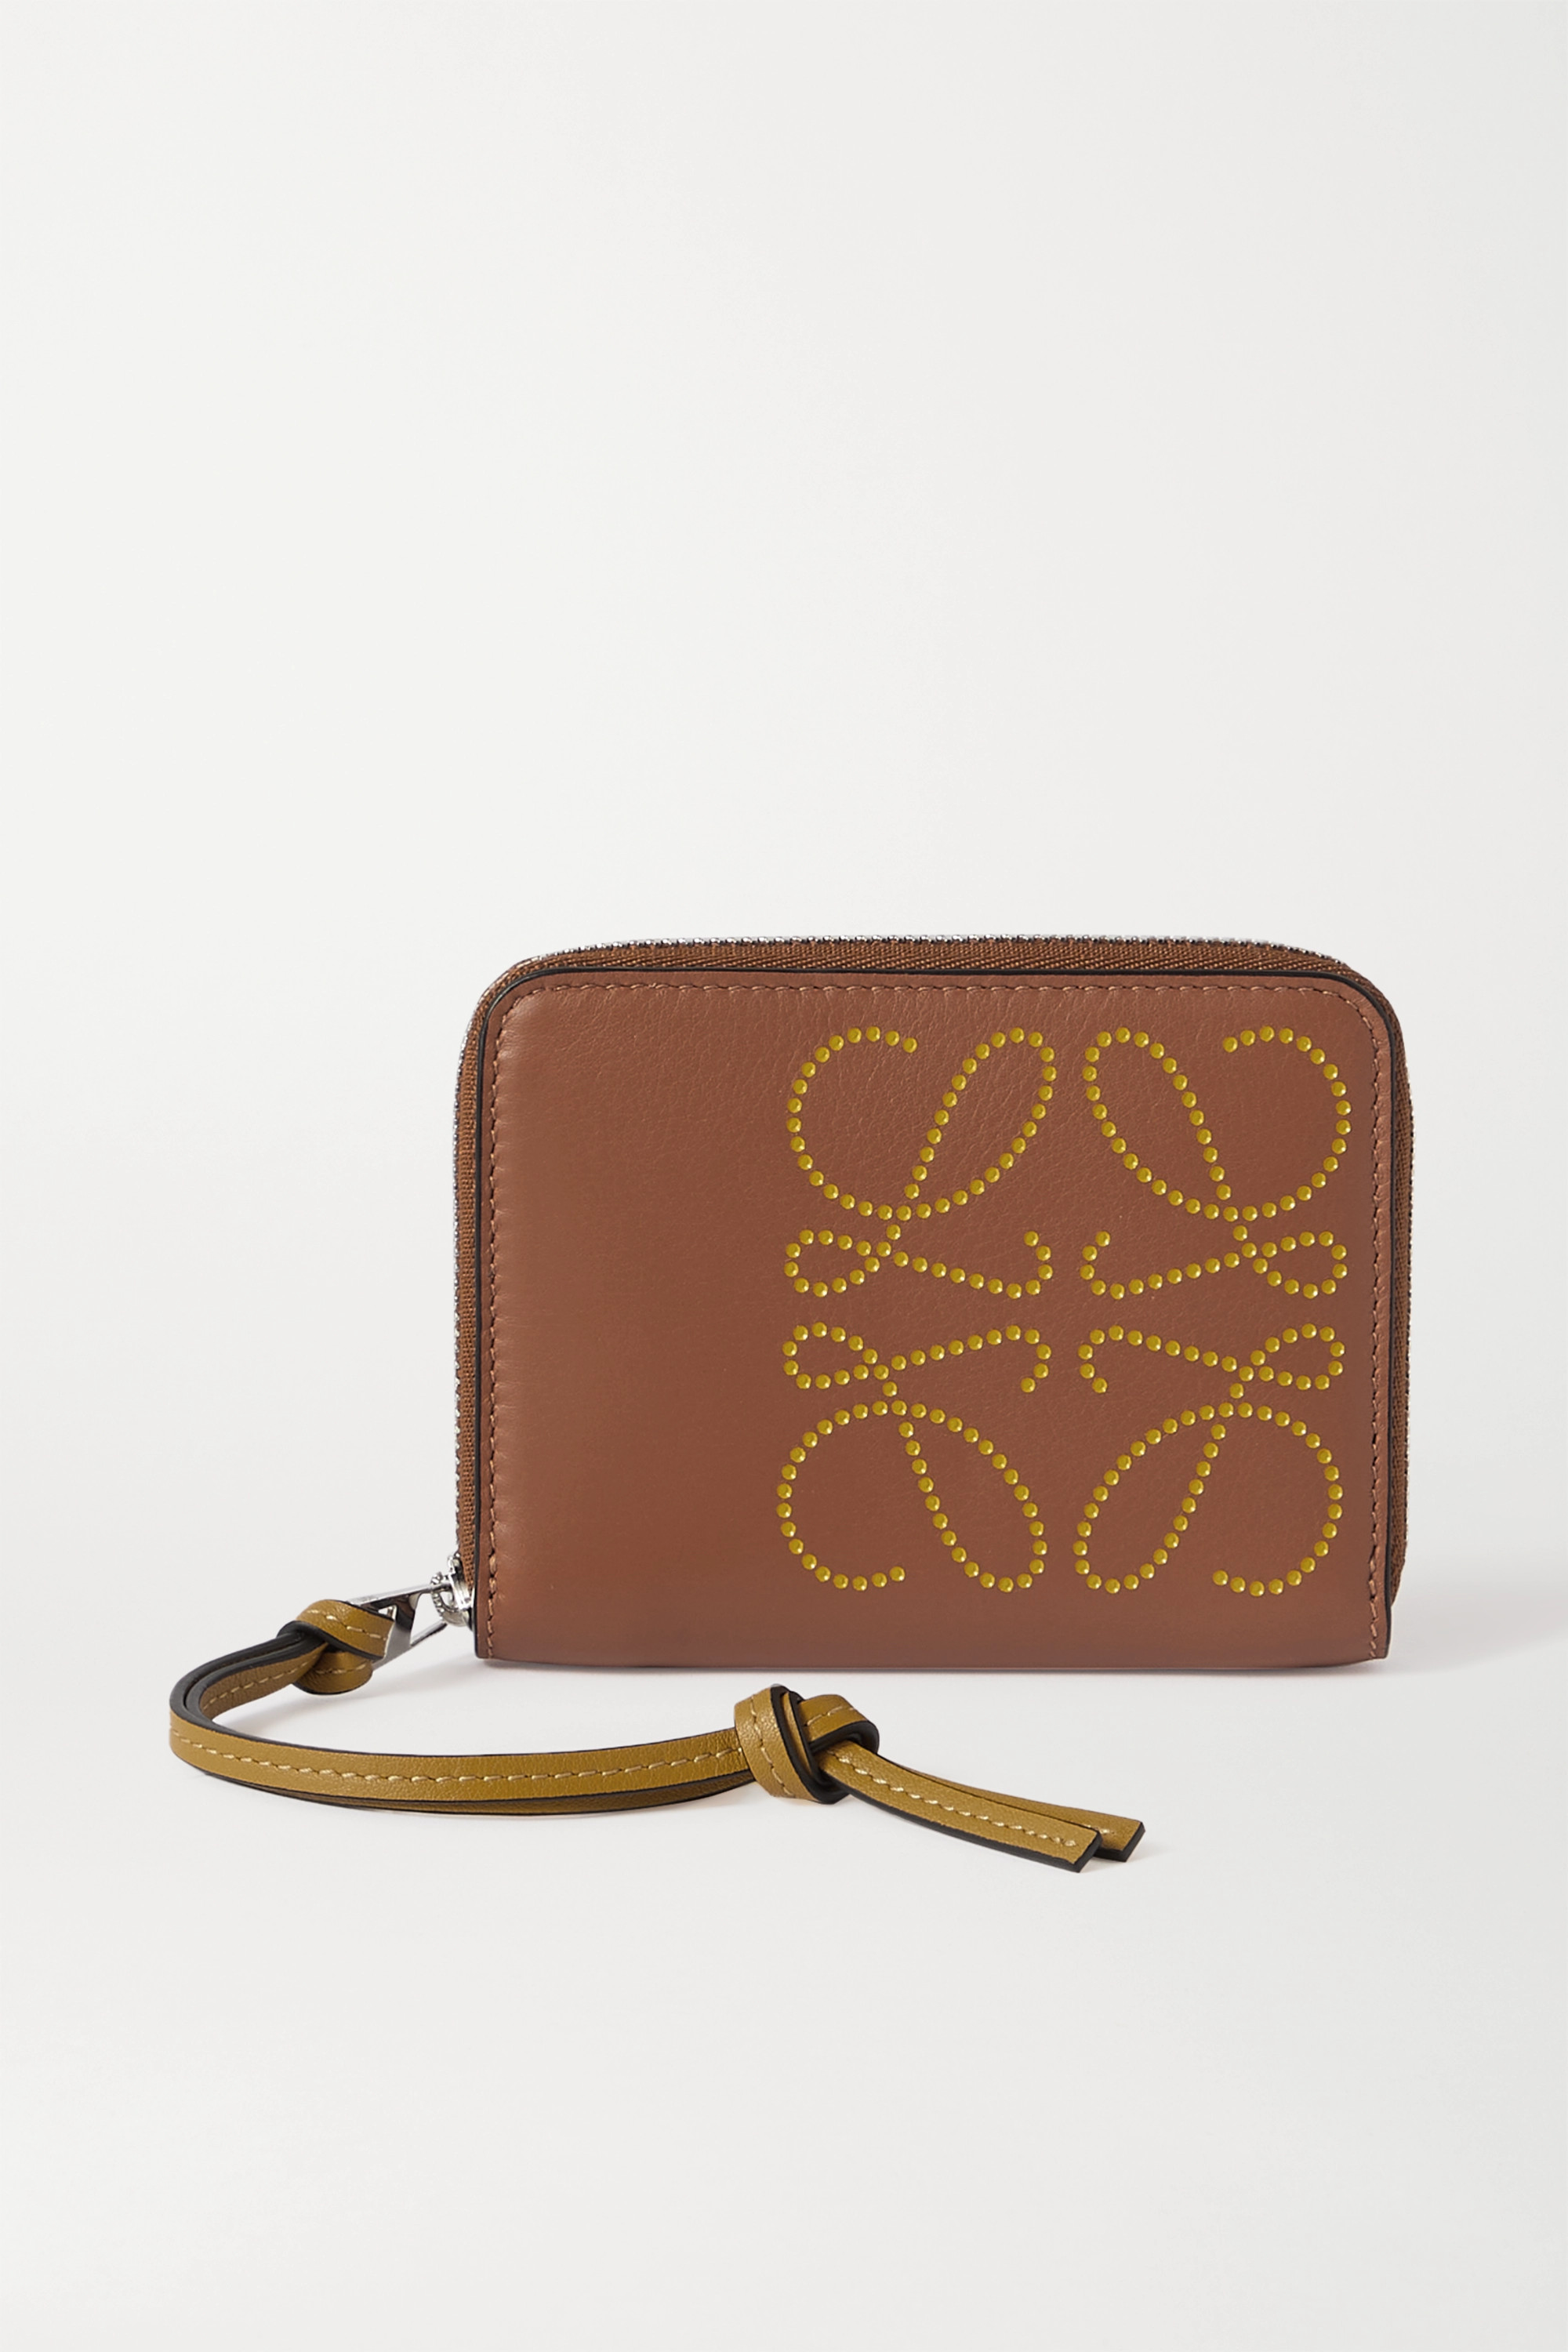 Loewe Embossed leather wallet